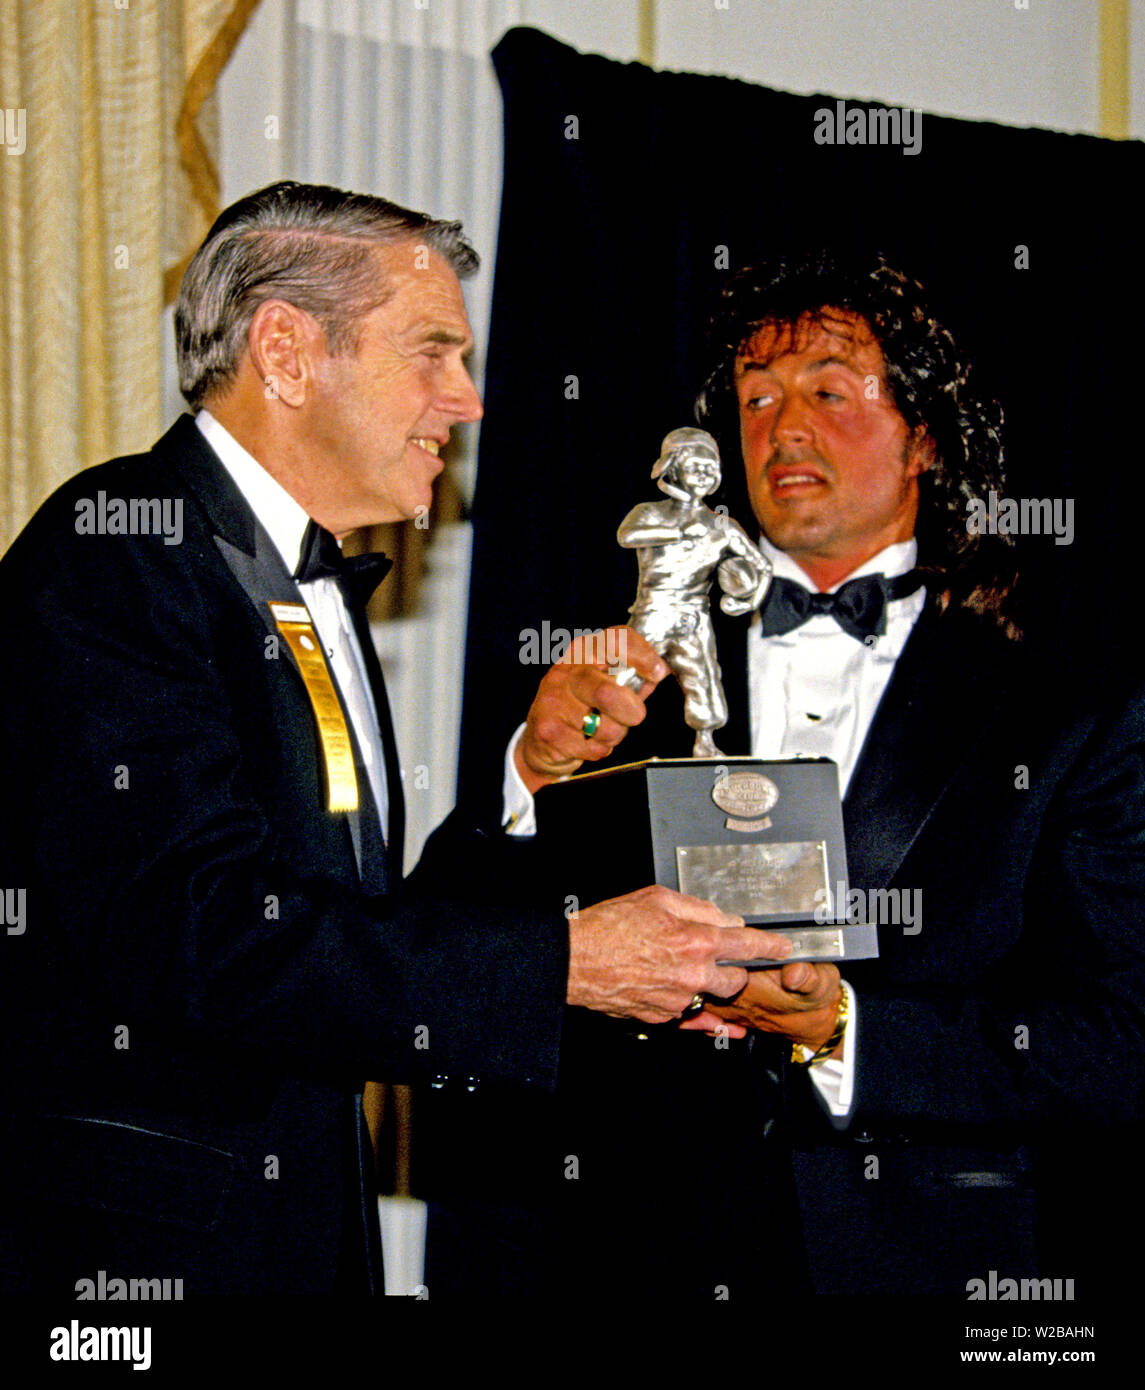 Washington, District of Columbia, USA. 23rd Jan, 1988. American actor, director, screenwriter, and producer Sylvester Stallone, right, accepts the President's Council on Physical Fitness award from former Washington Redskins head coach George Allen, left, at the Washington, DC Touchdown Club dinner in Washington, DC on January 23, 1988. Credit: Arnie Sachs/CNP/ZUMA Wire/Alamy Live News - Stock Image